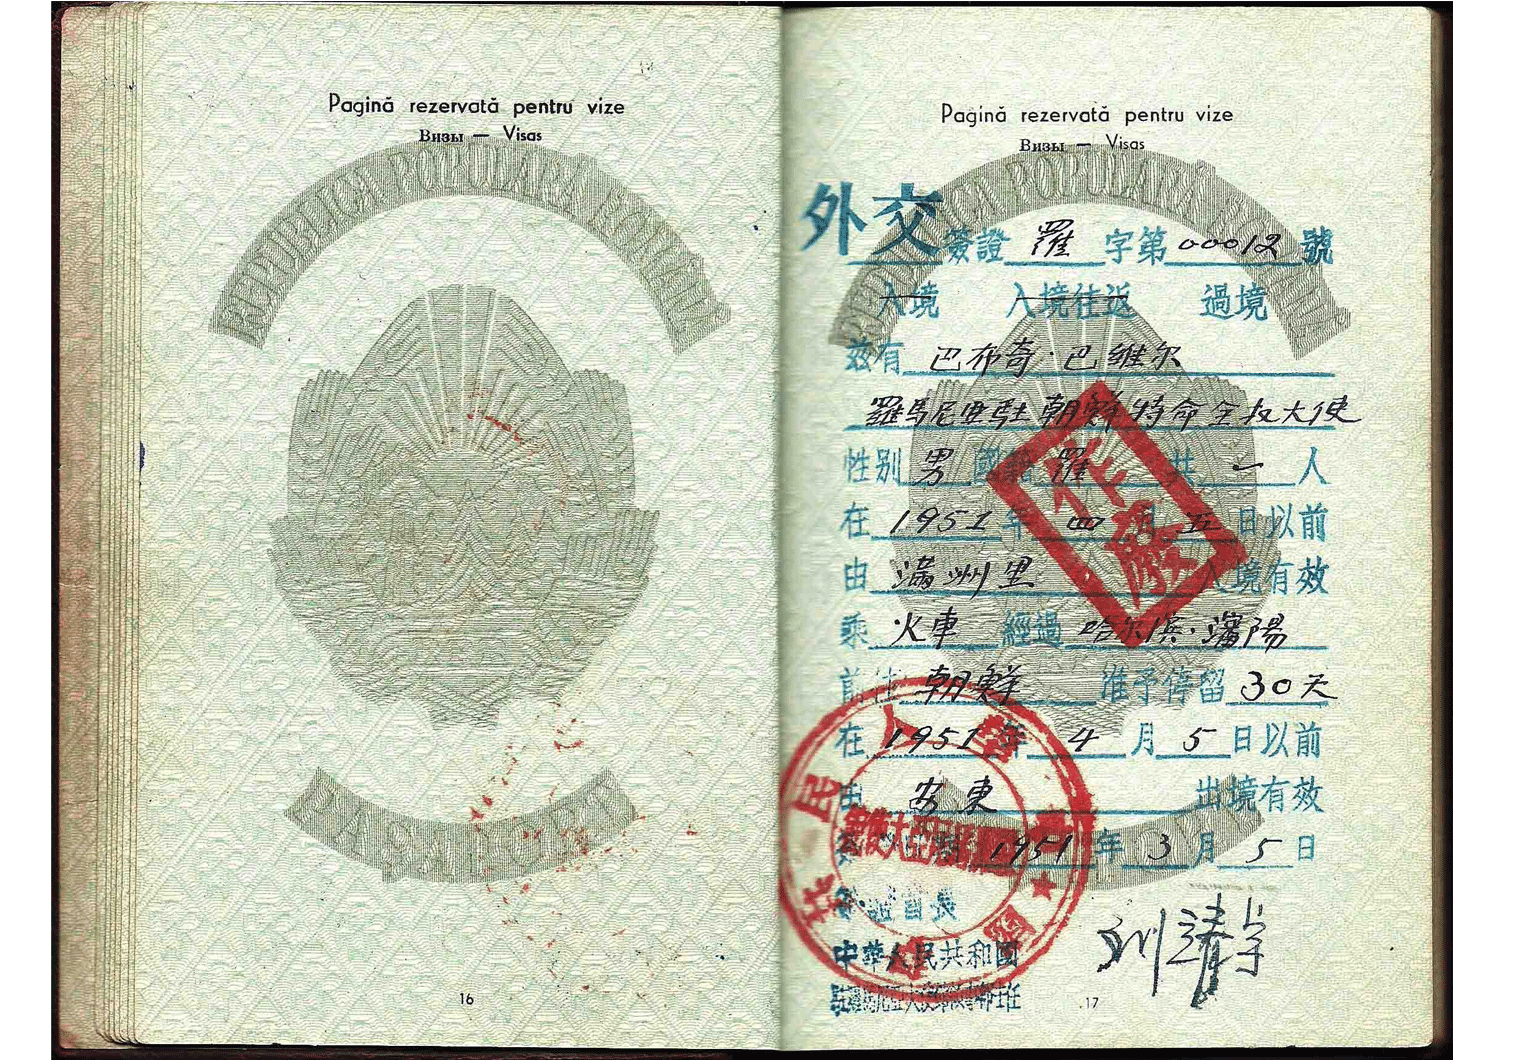 1951 Chinese diplomatic visa inside a passport